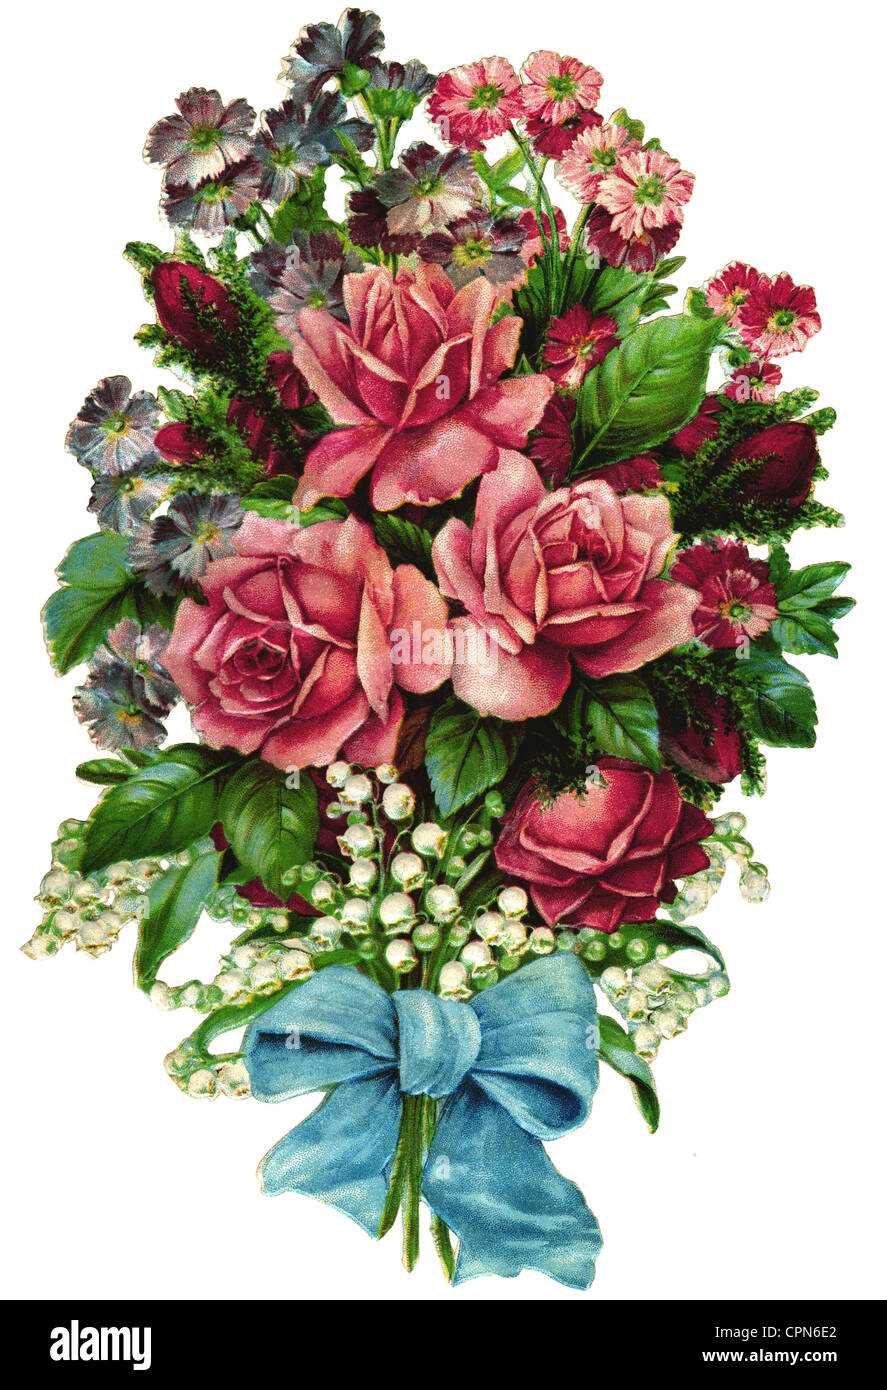 Kitsch souvenir flower bouquet bouquet of roses scrap picture kitsch souvenir flower bouquet bouquet of roses scrap picture germany 1894 flower rose red white pink roses bouquet izmirmasajfo